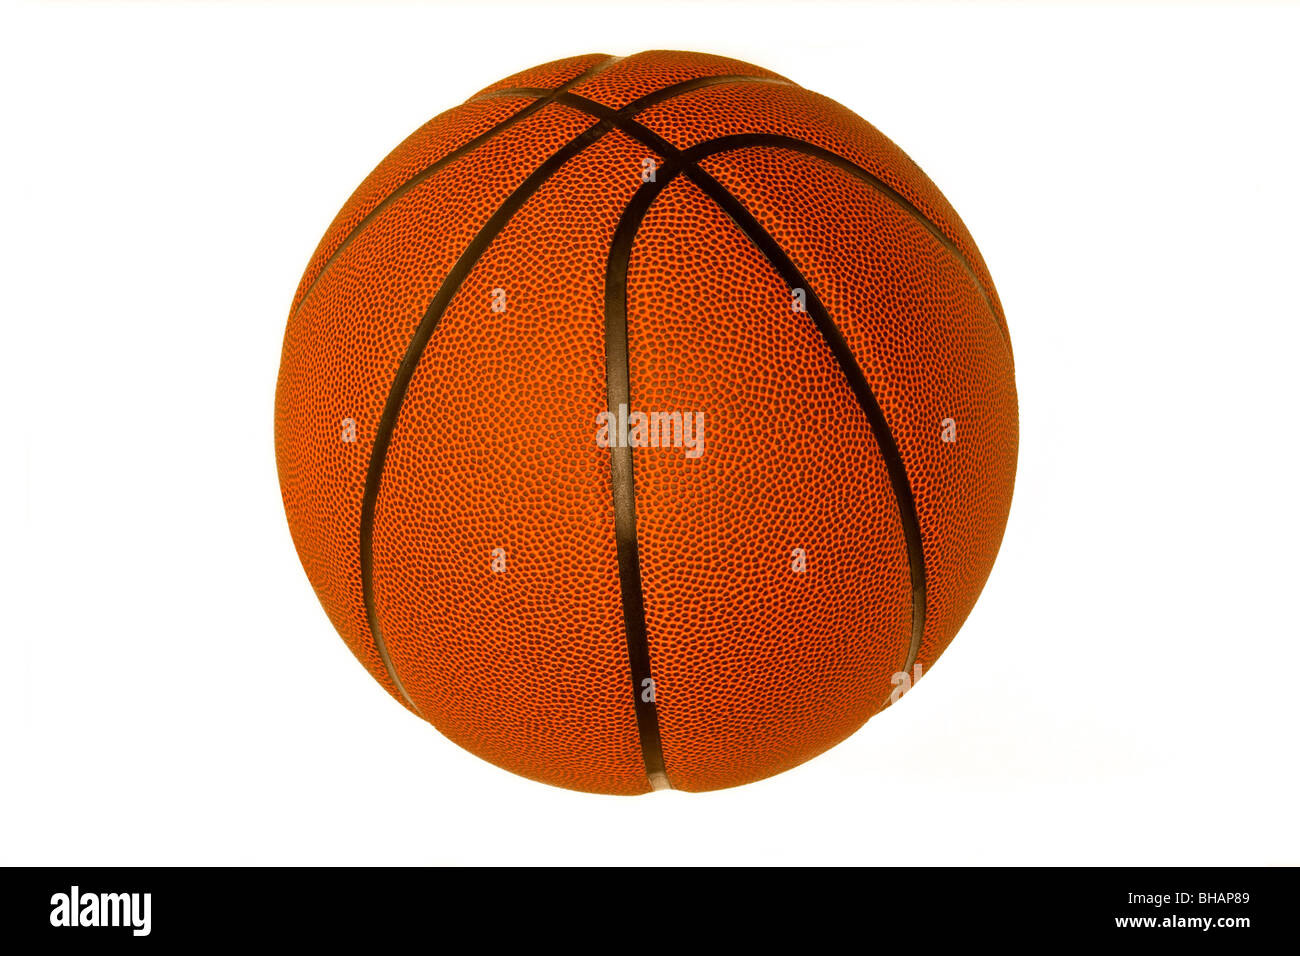 Basketball cut out - Stock Image